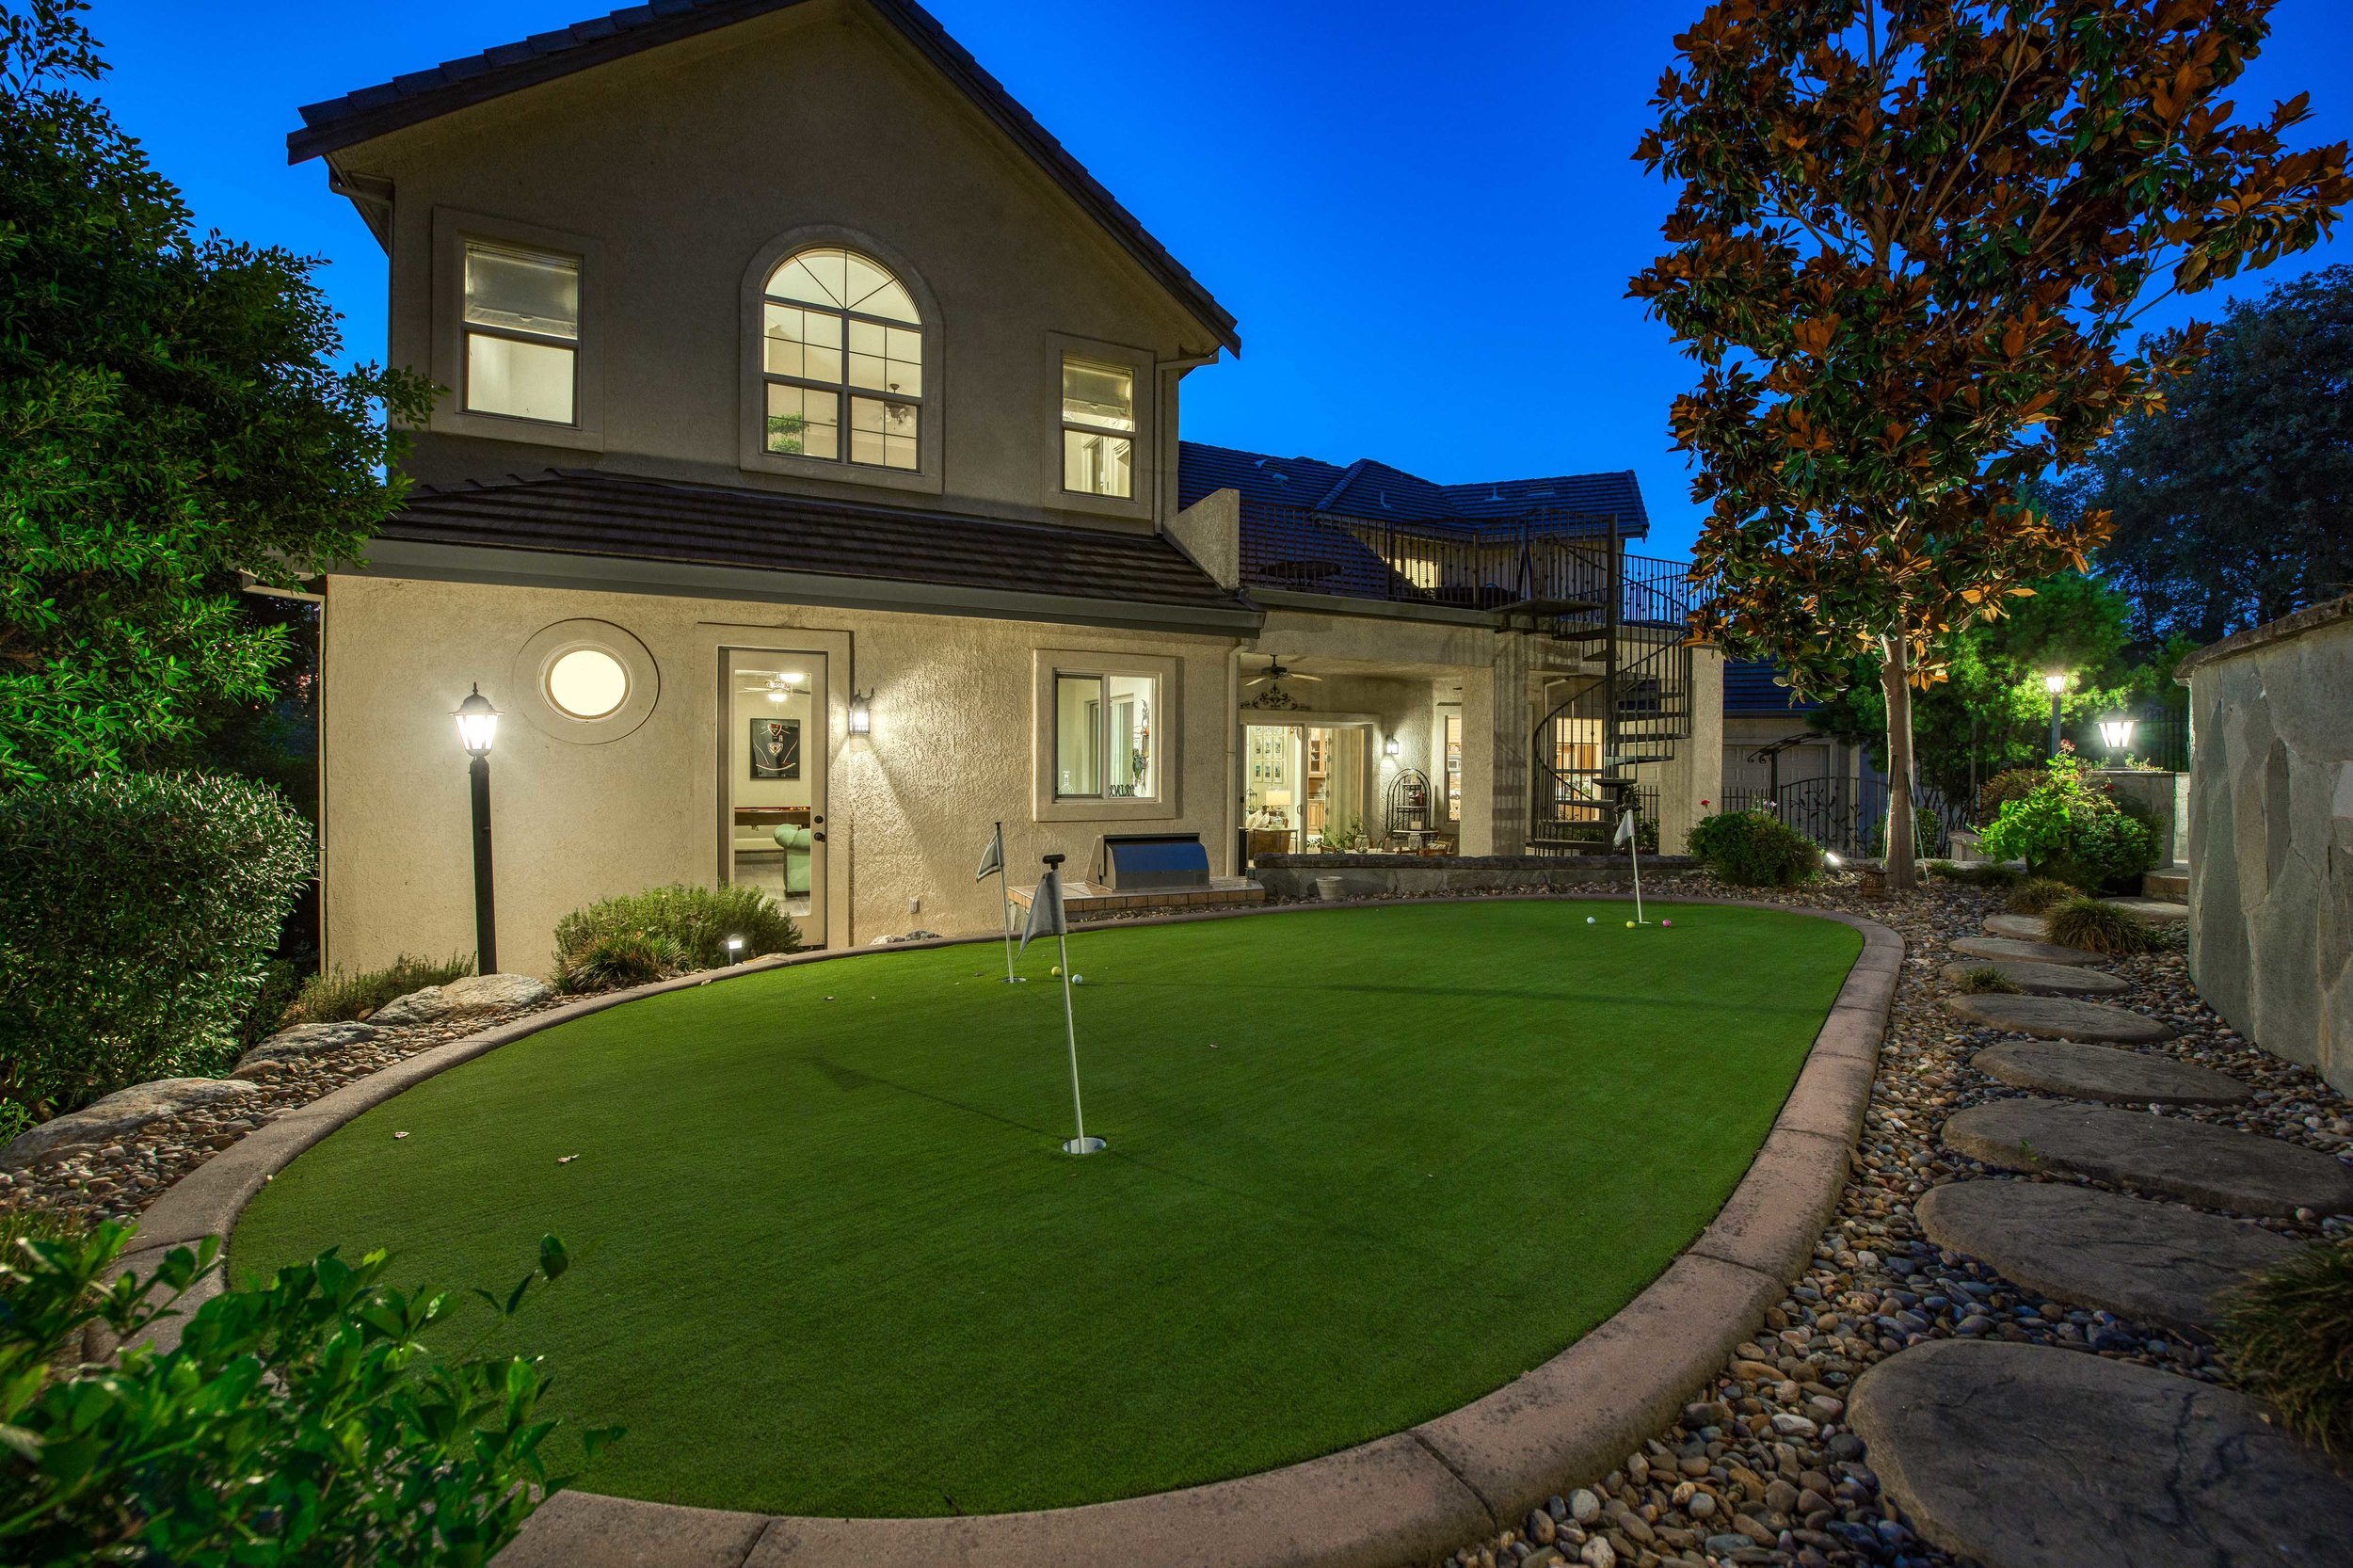 2330 Clubhouse Drive - Twilight - 18.jpg